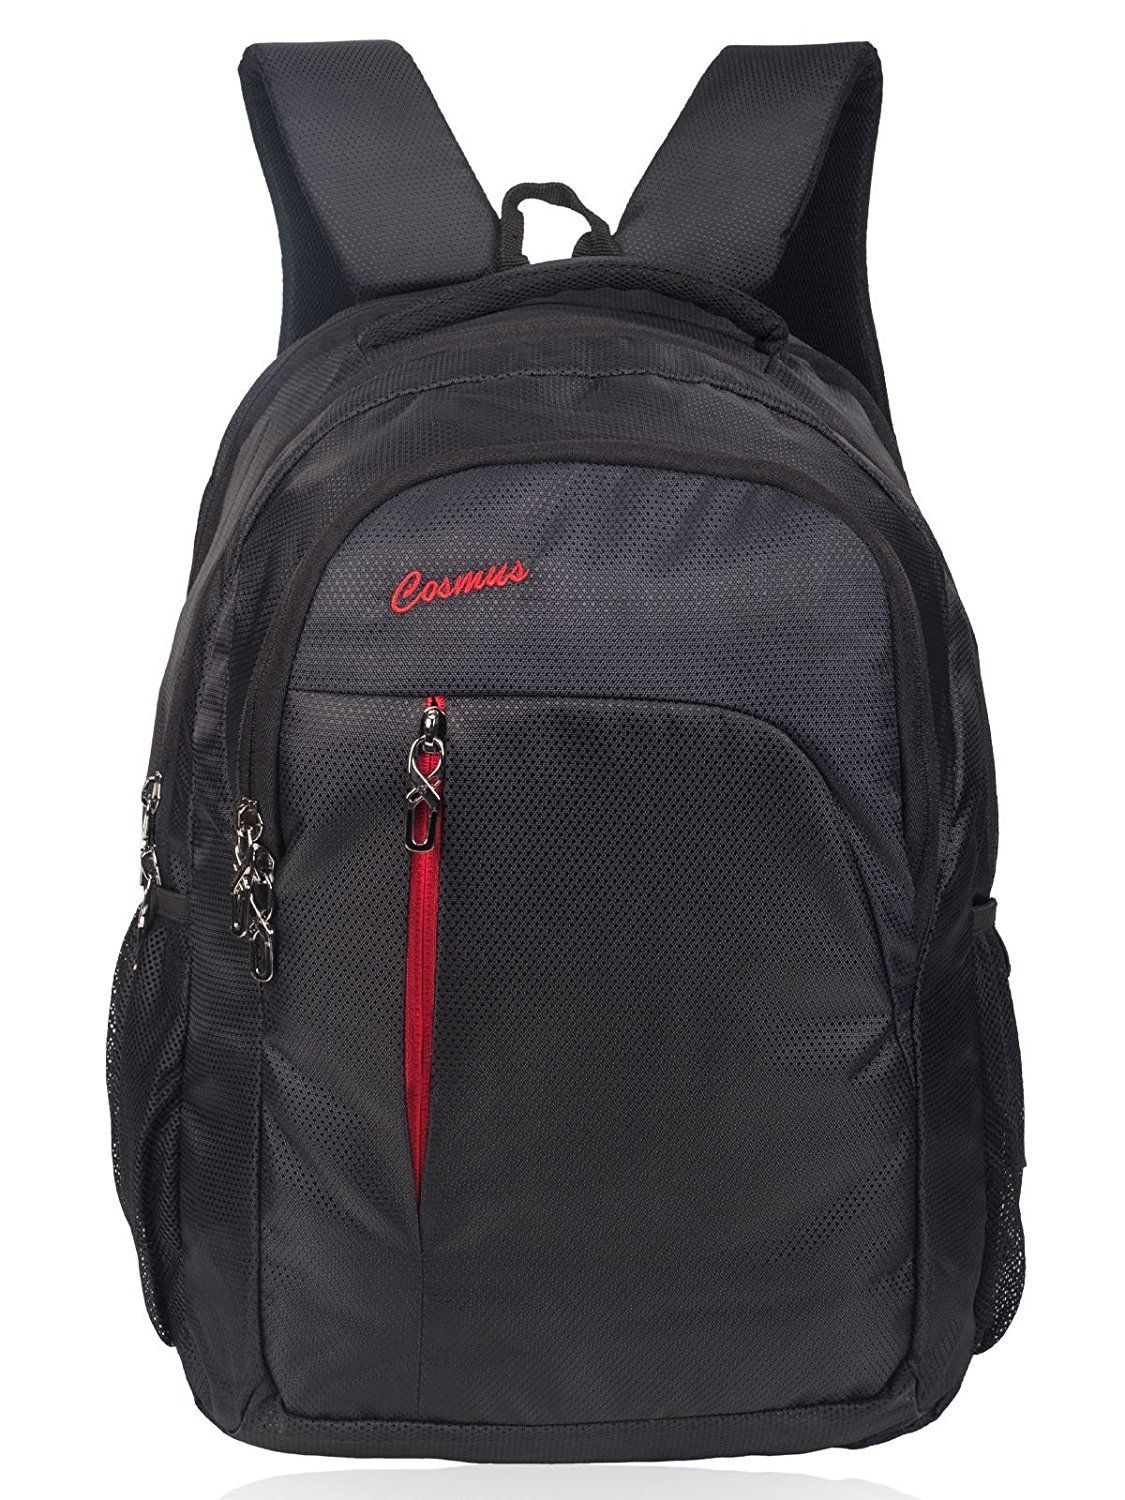 What are some of the best waterproof laptop backpacks under 2k in ...